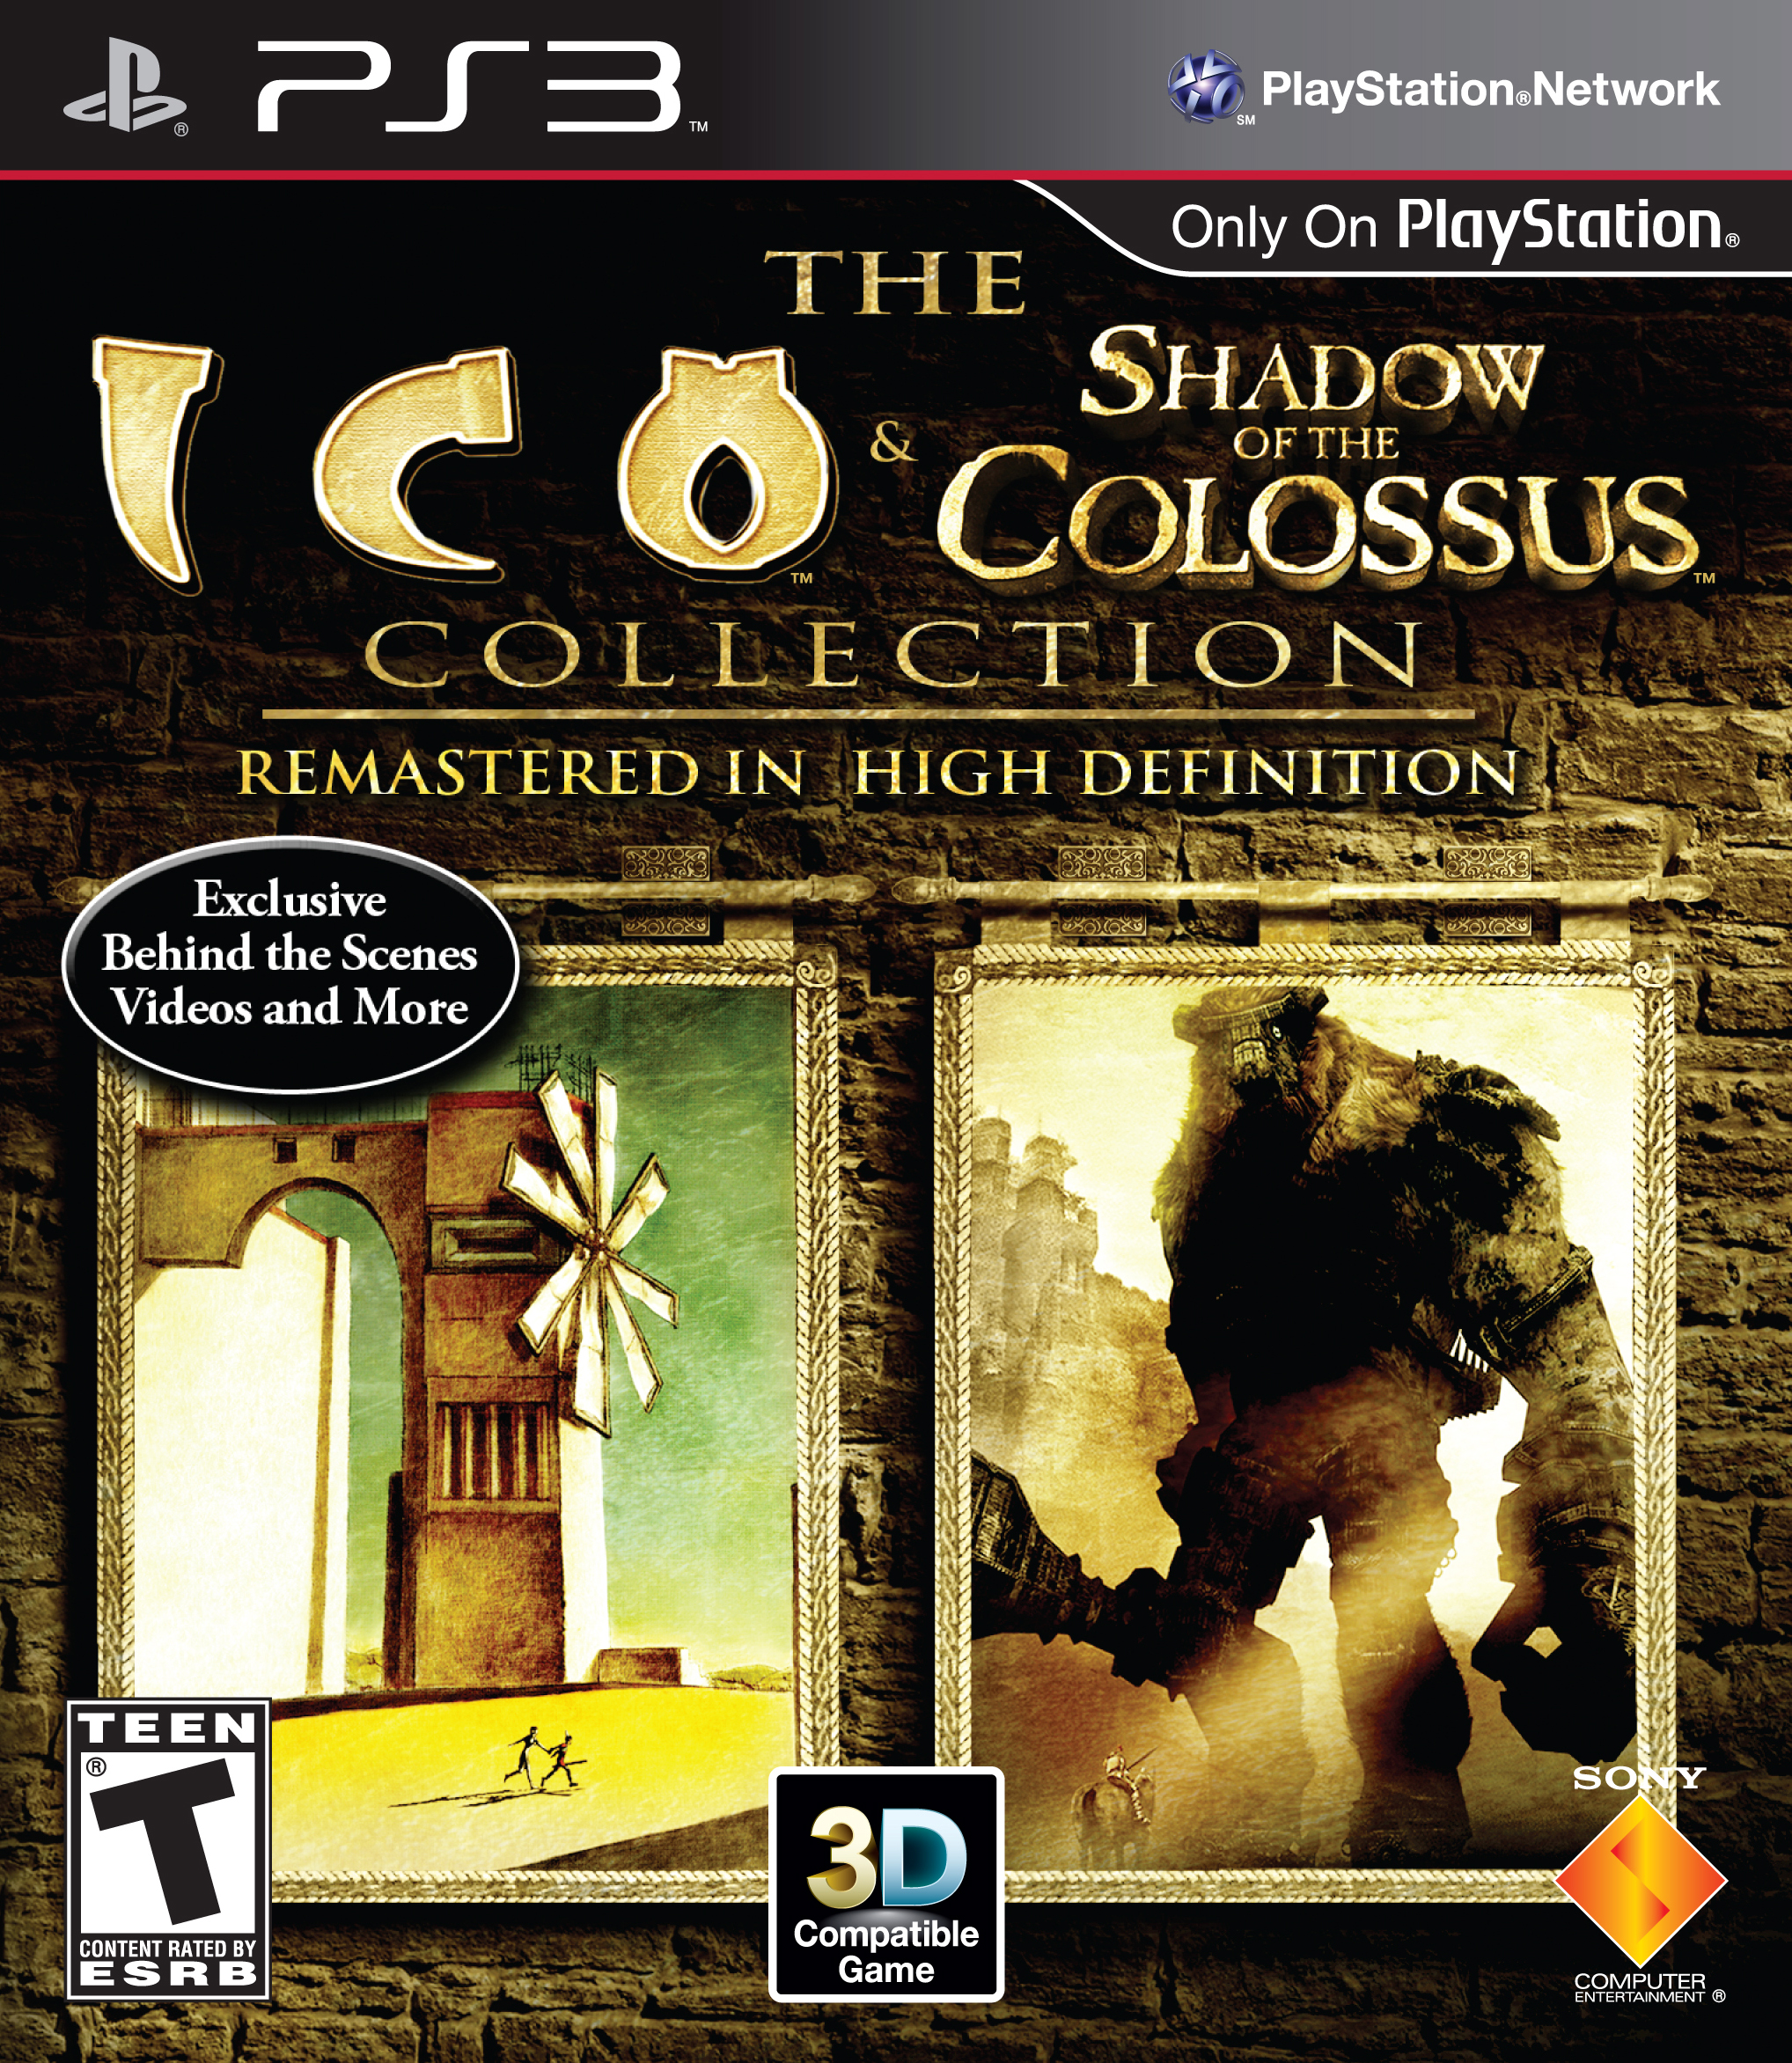 The ICO and Shadow of the Colossus Collection